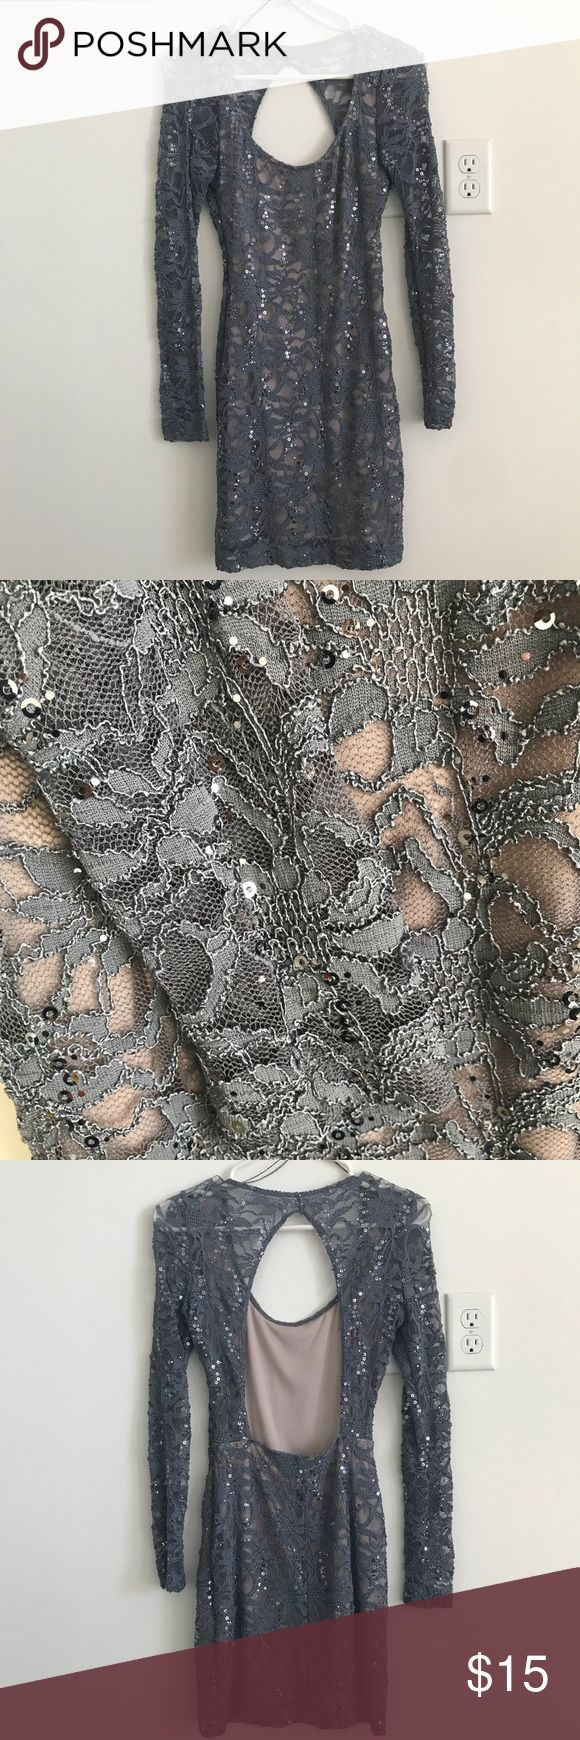 Sequins grey dress Sequins grey open back dress. The arms are lace see through while the body has a nude slip attached to it. It is above the knee for a petite person. Windsor Dresses Mini